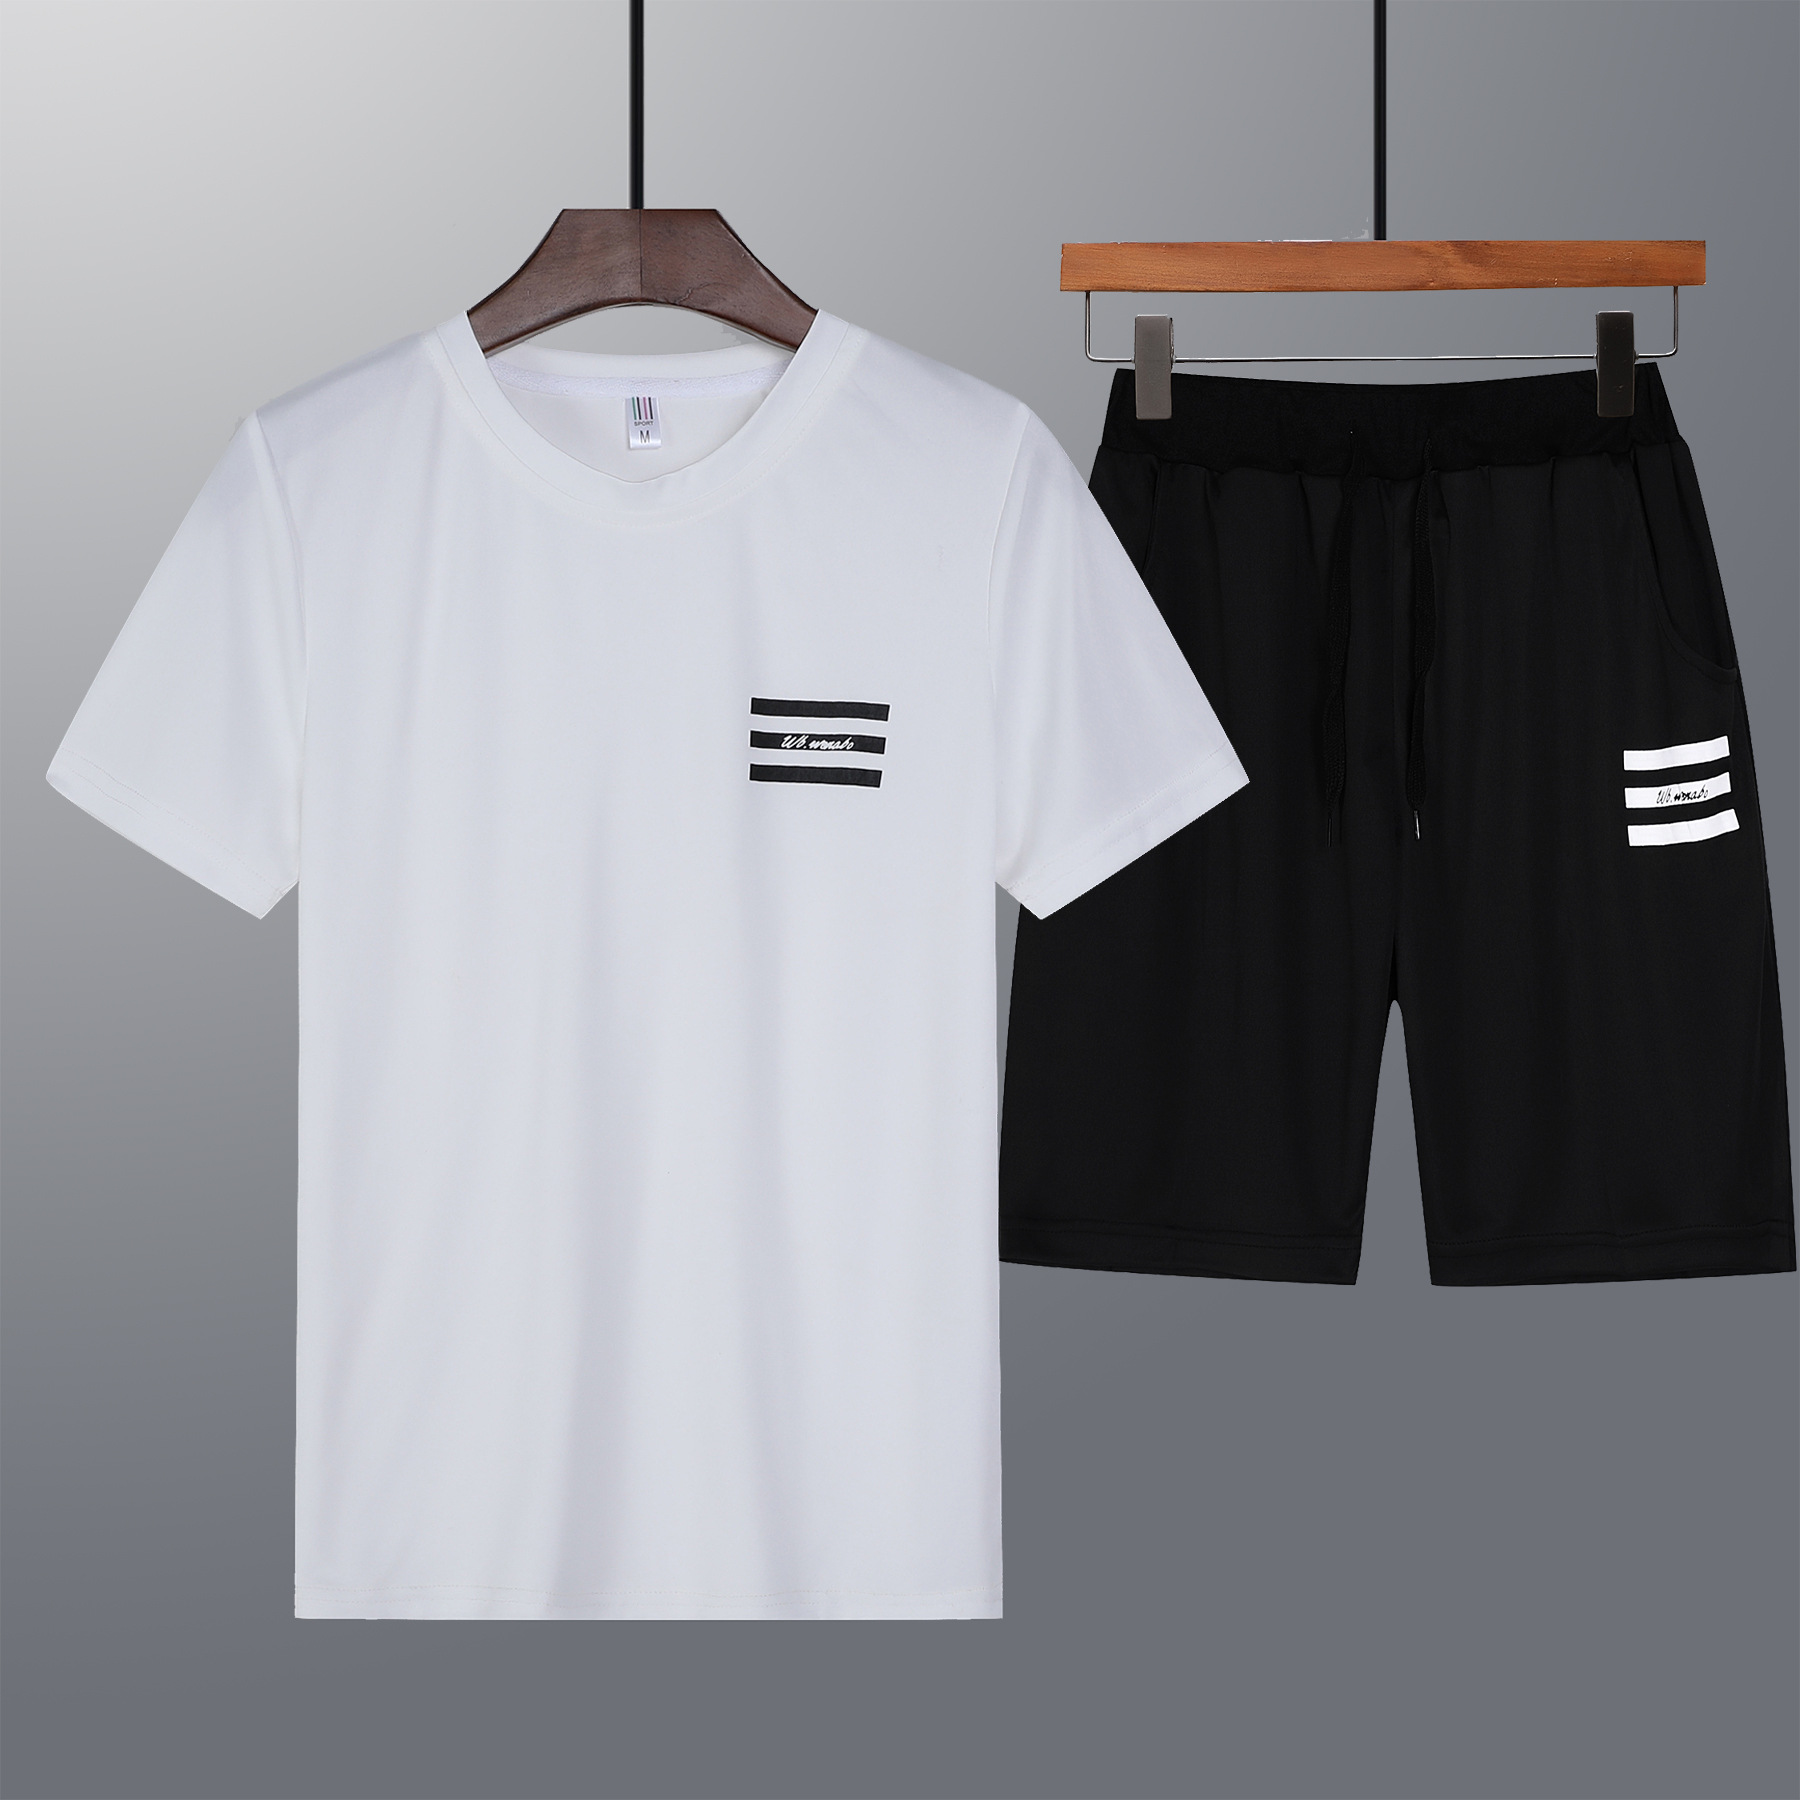 Summer New Style Sports Clothing Men'S Wear Youth Fitness Men Running T-shirt Short Sleeve Shorts Casual Large Size Two-Piece Se